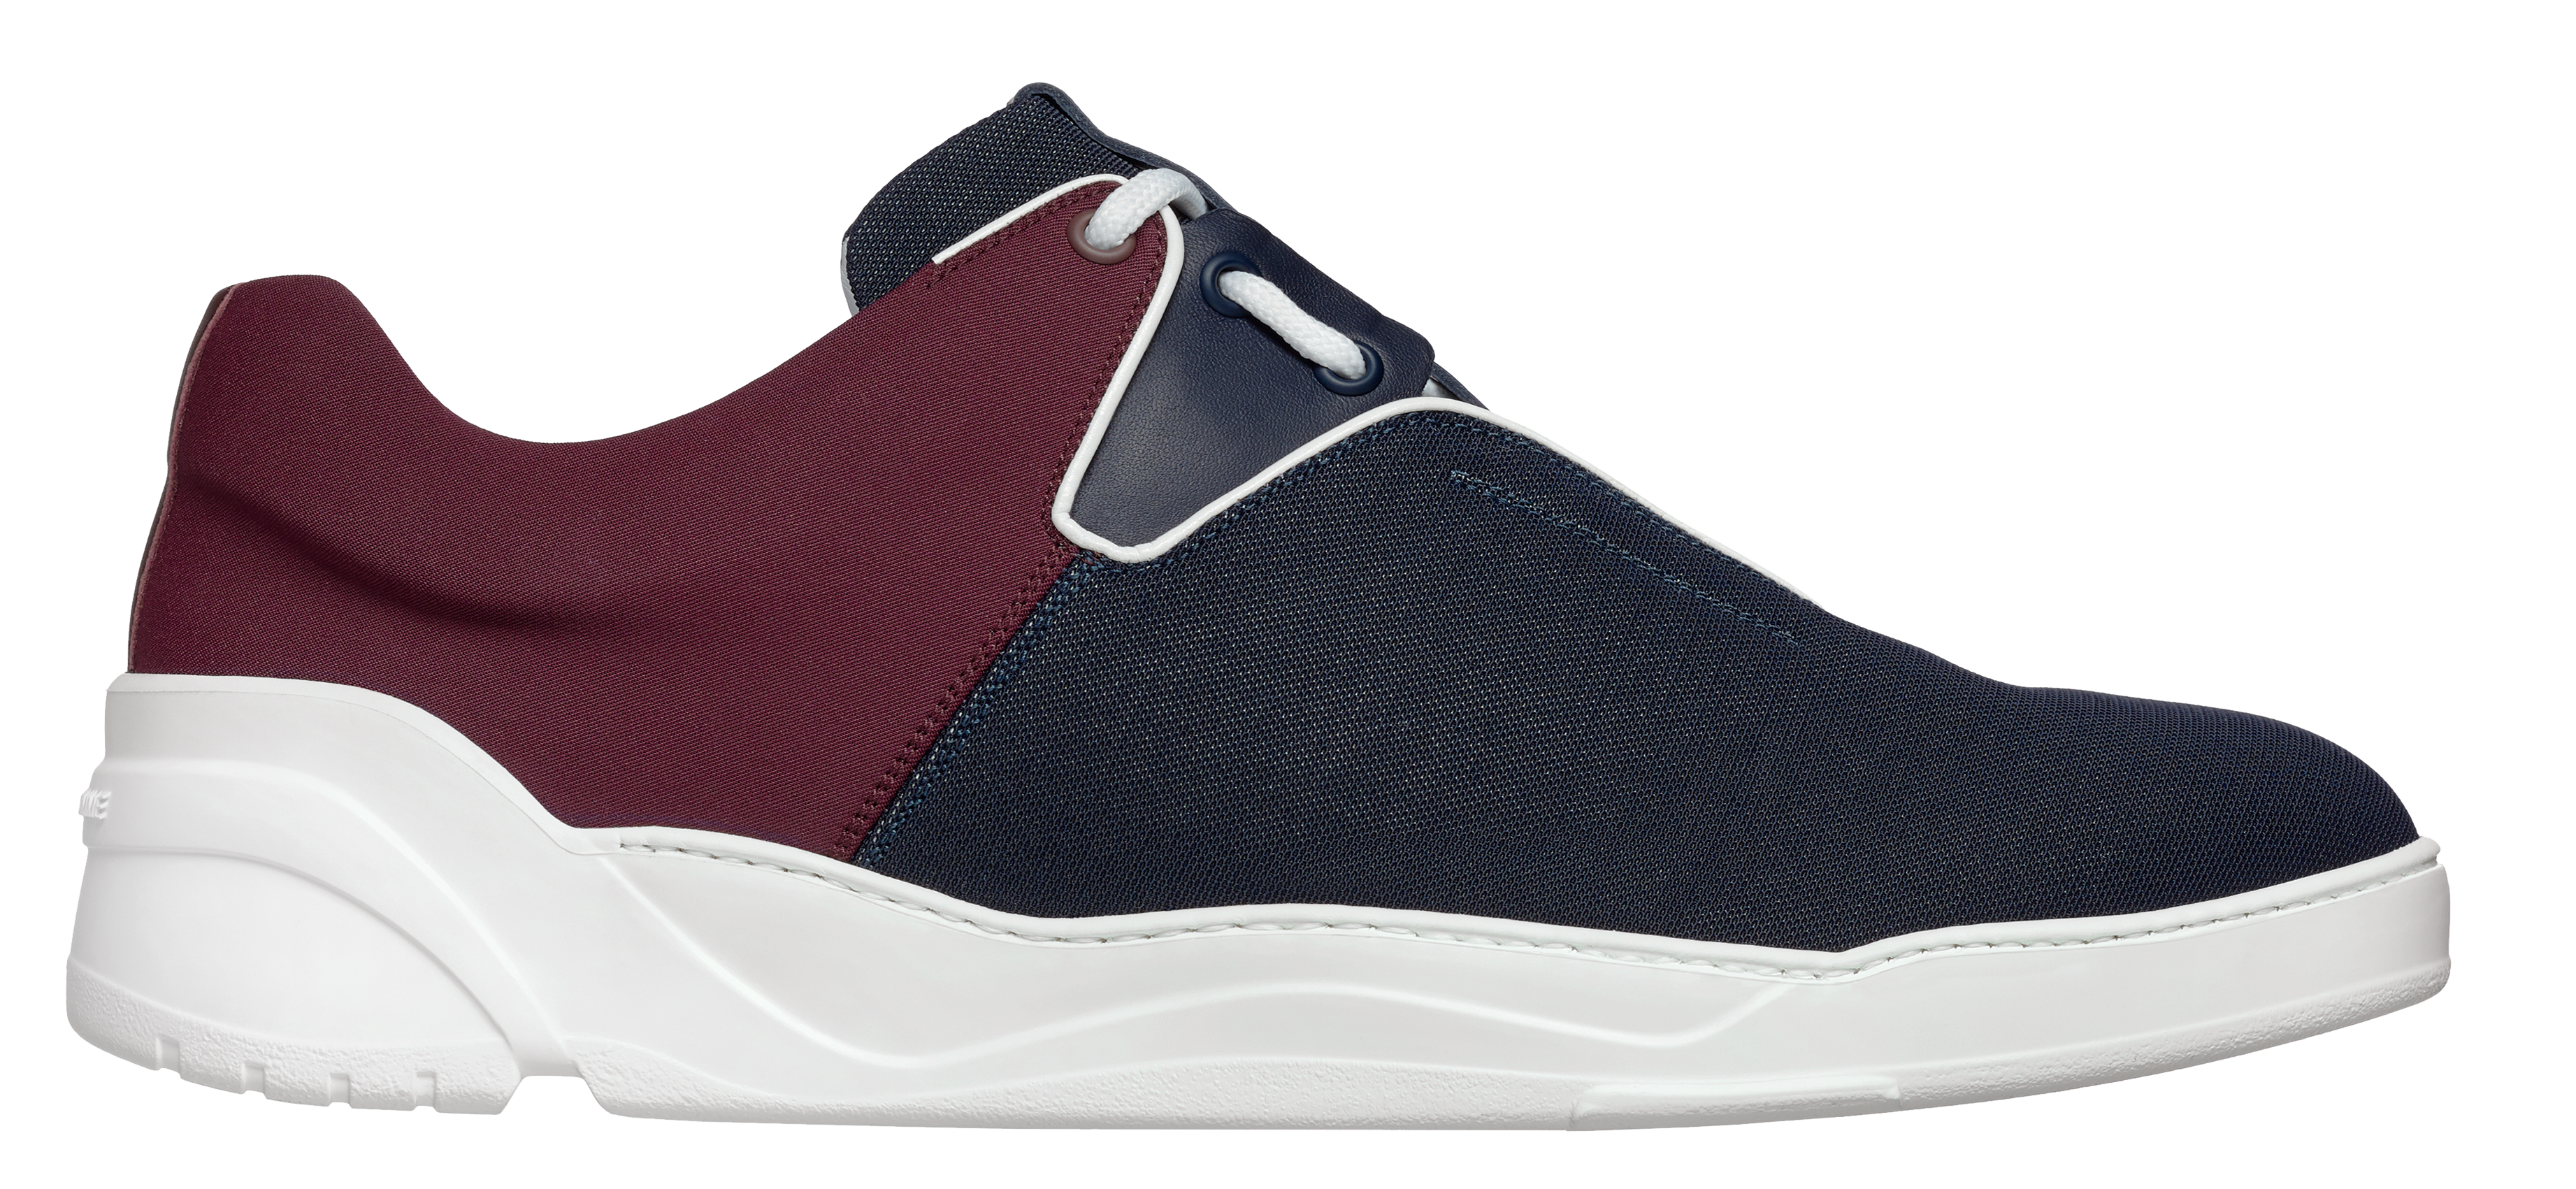 Dior Homme sneakers B17 for Winter 2015 - Crash a6ed5bcc923